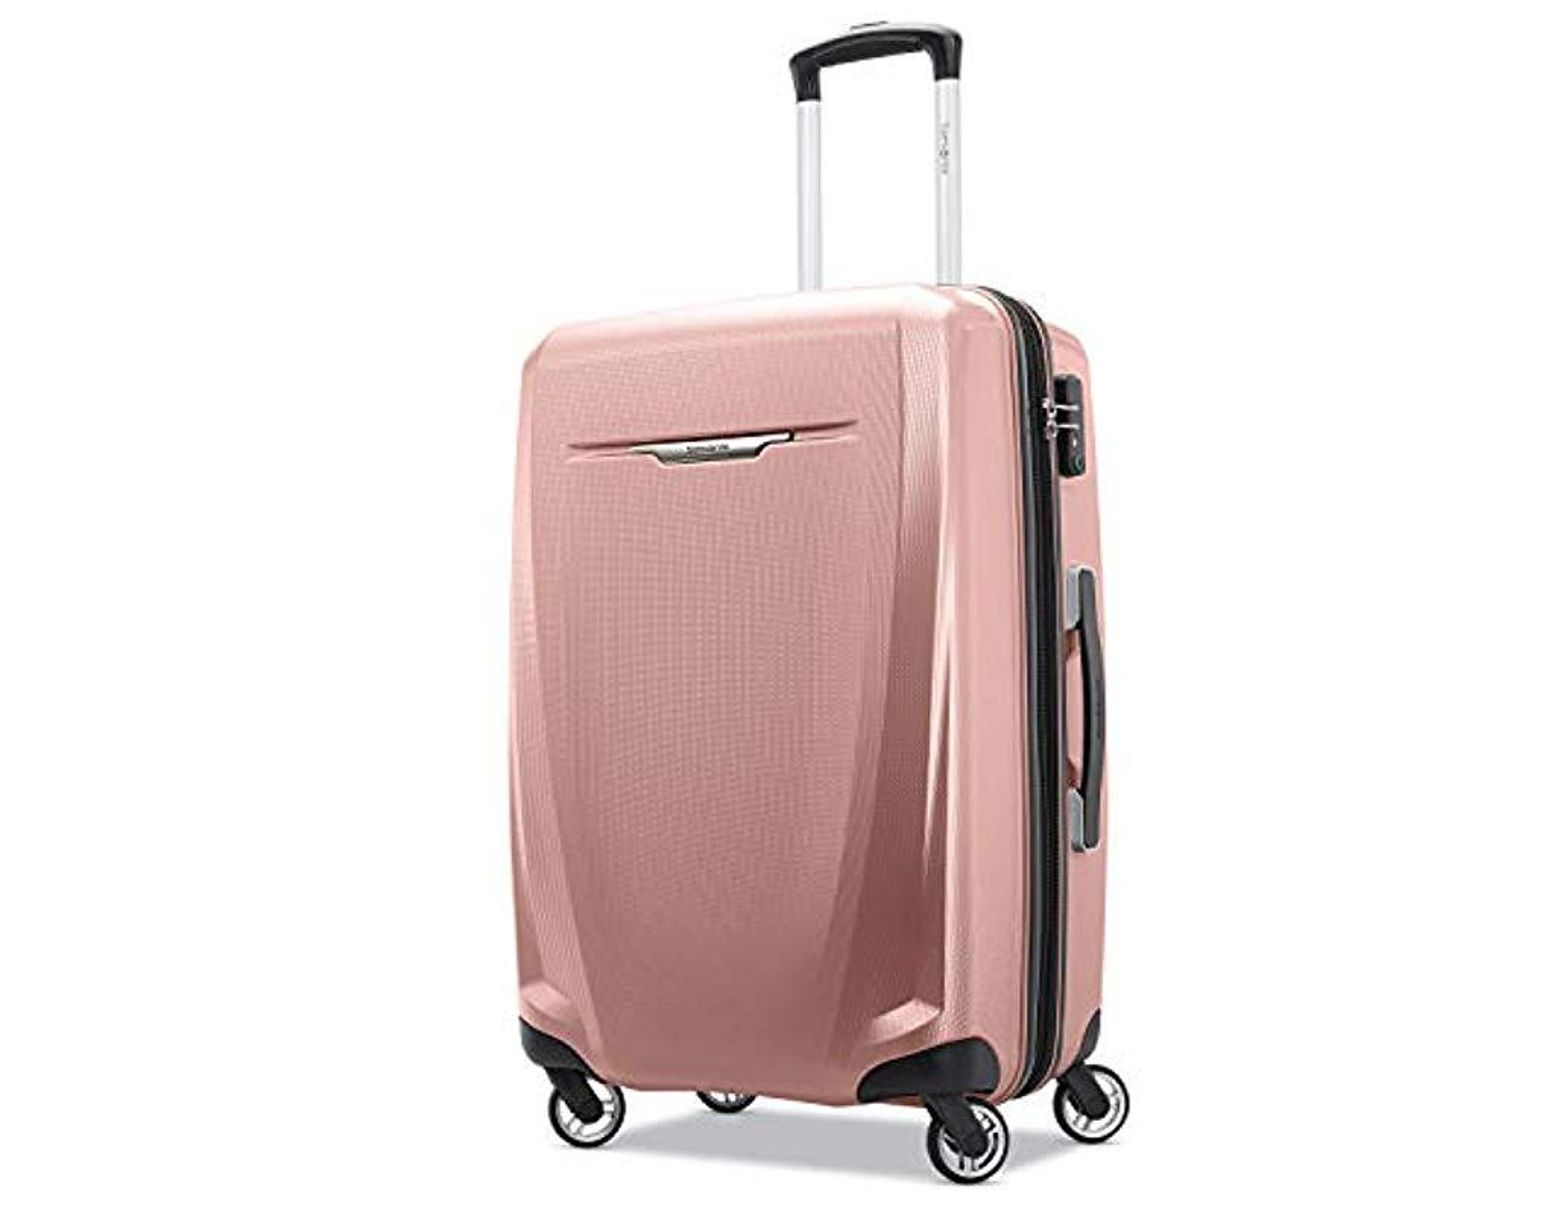 2be831c4f42e Samsonite Winfield 3 Dlx Hardside Checked Luggage With Spinner ...